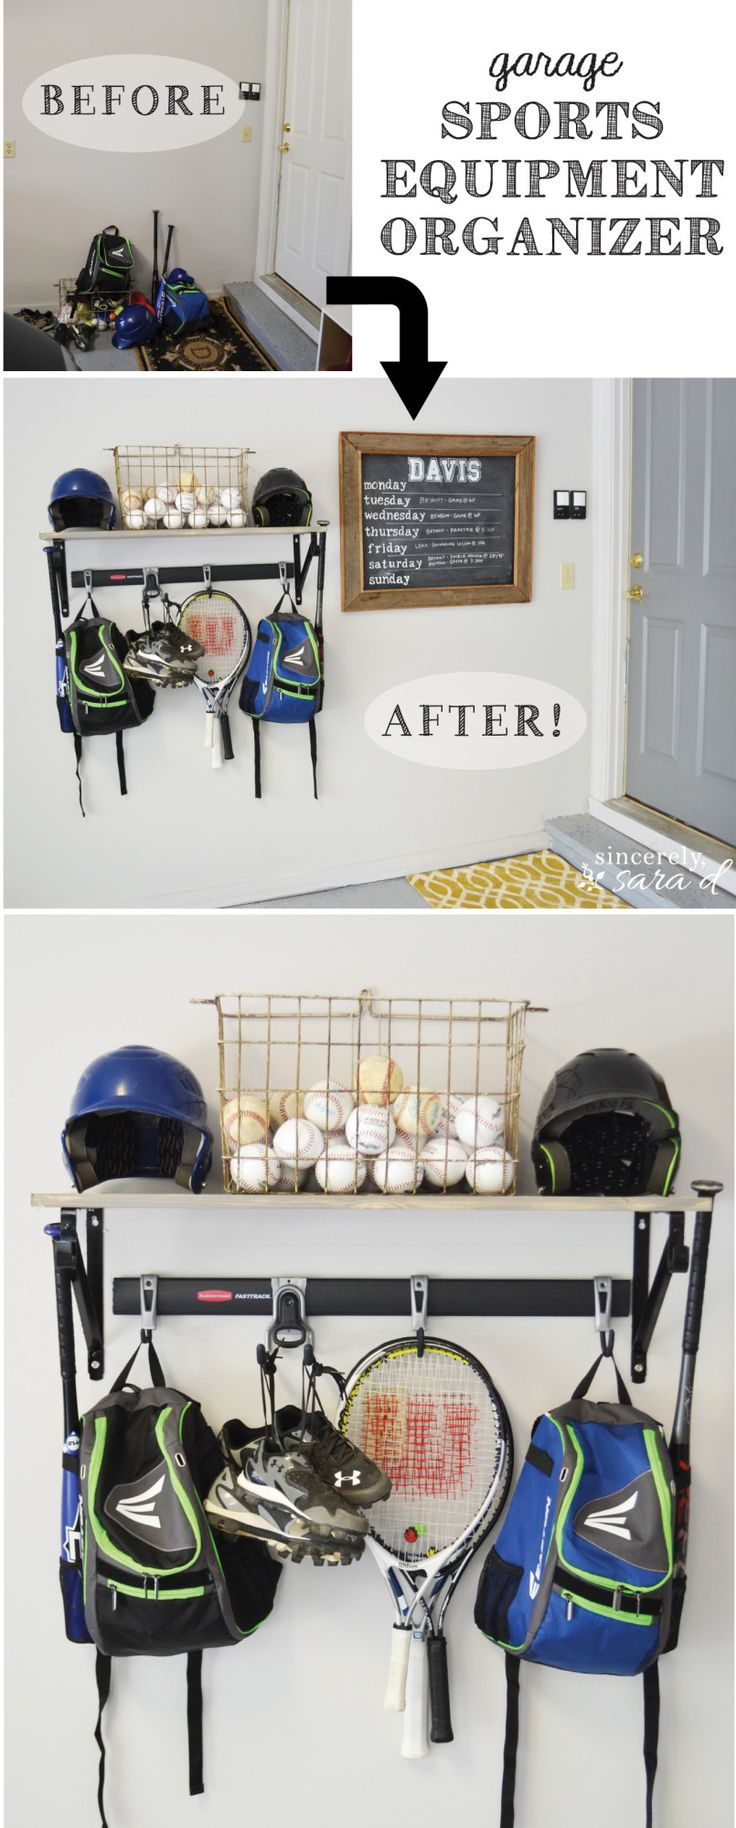 Great Garage Sports Equipment Organizer